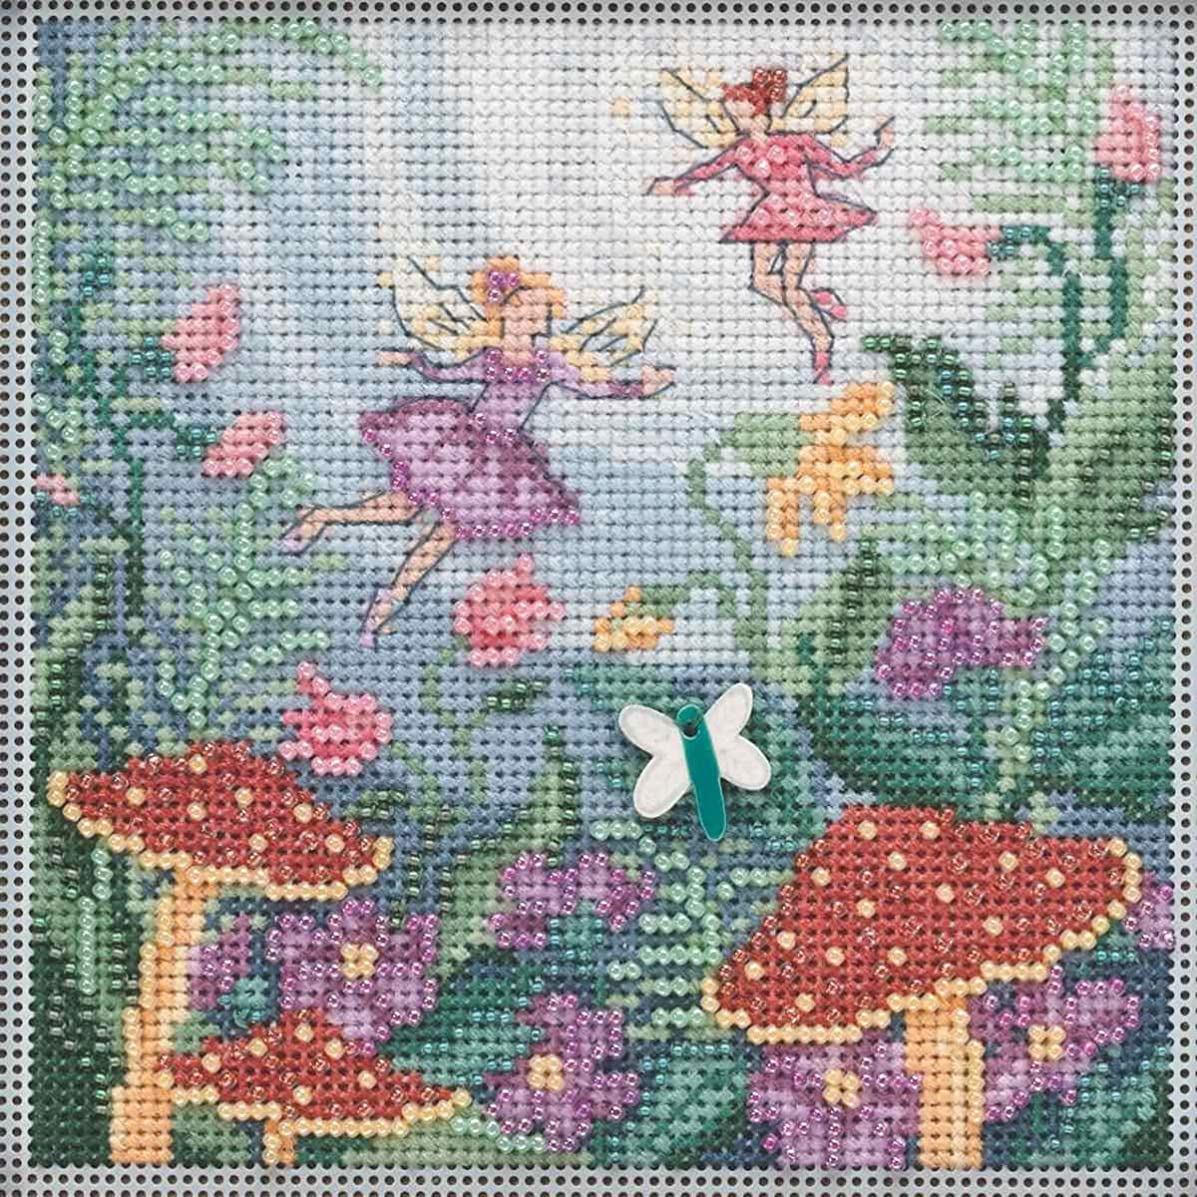 Fairy Garden Beaded Counted Cross Stitch Kit Mill Hill 2019 Buttons & Beads Autumn MH141921